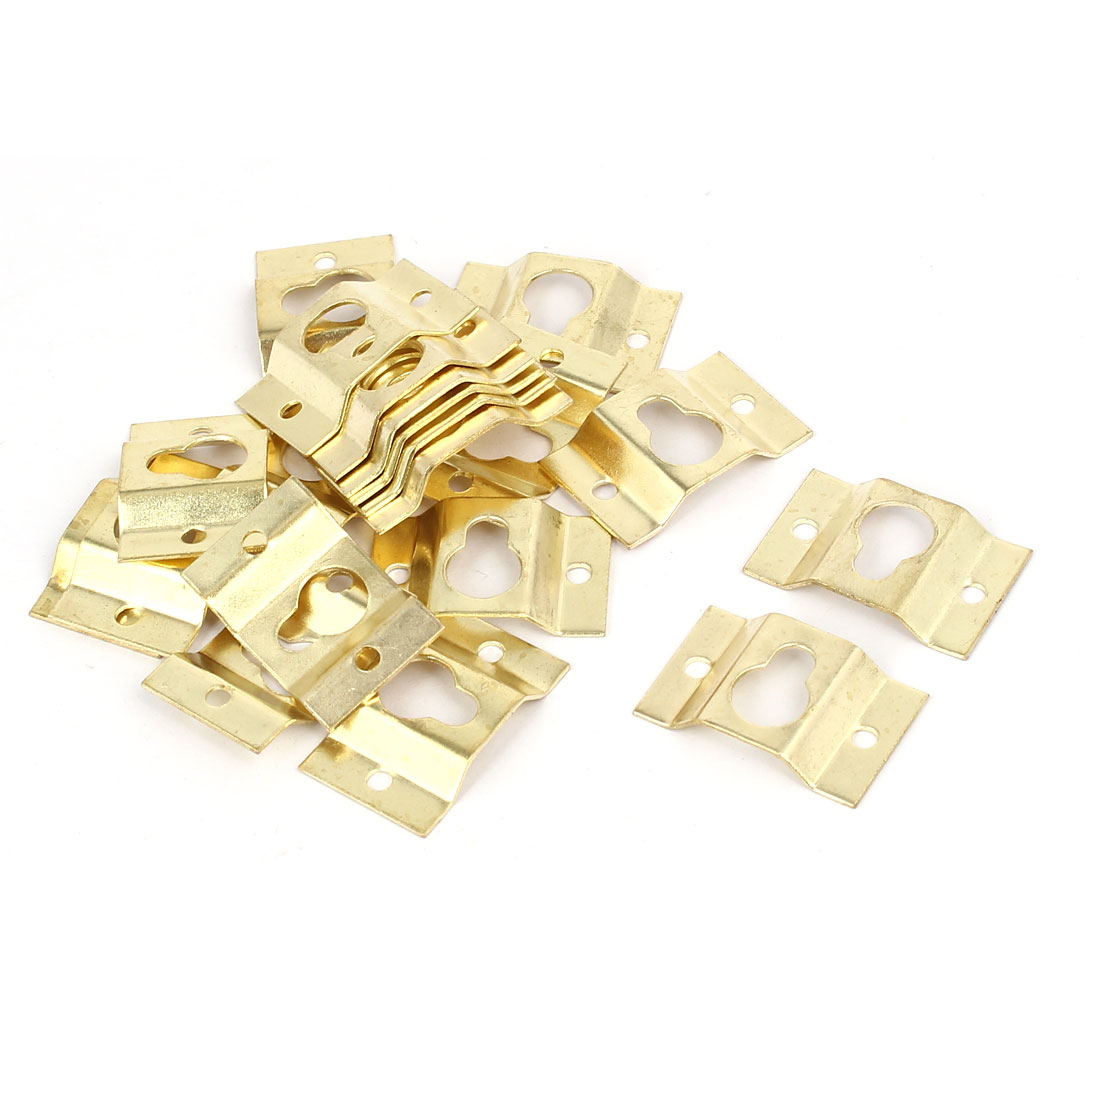 28mmx18mmx4mm Wall Hanging Picture Photo Frame Hidden Hook Gold Tone 20pcs